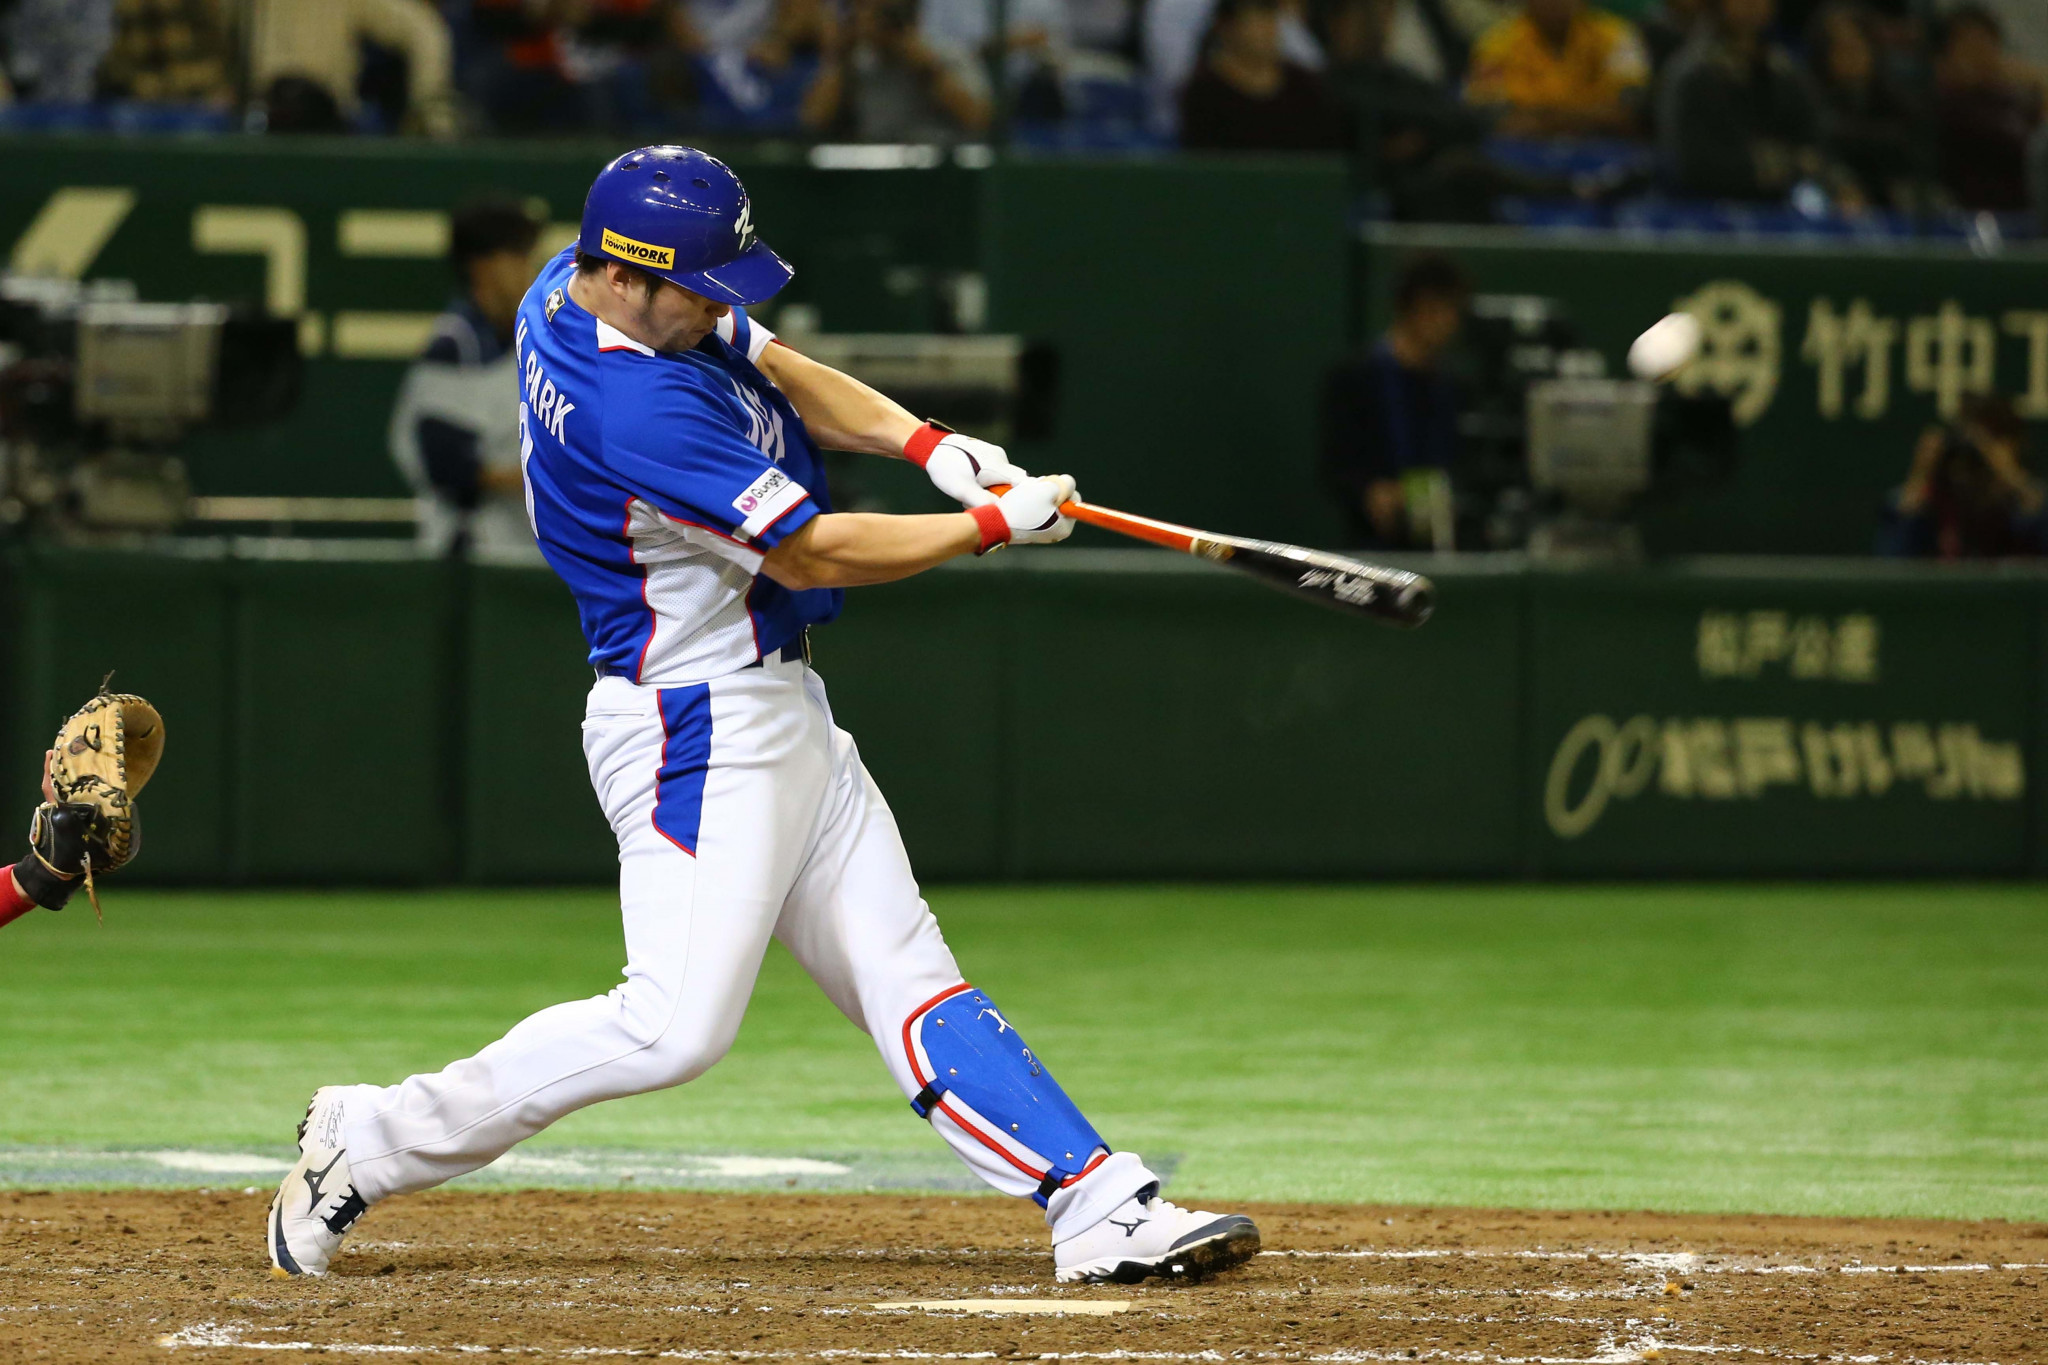 WBSC announce locations and groups for Premier12 event